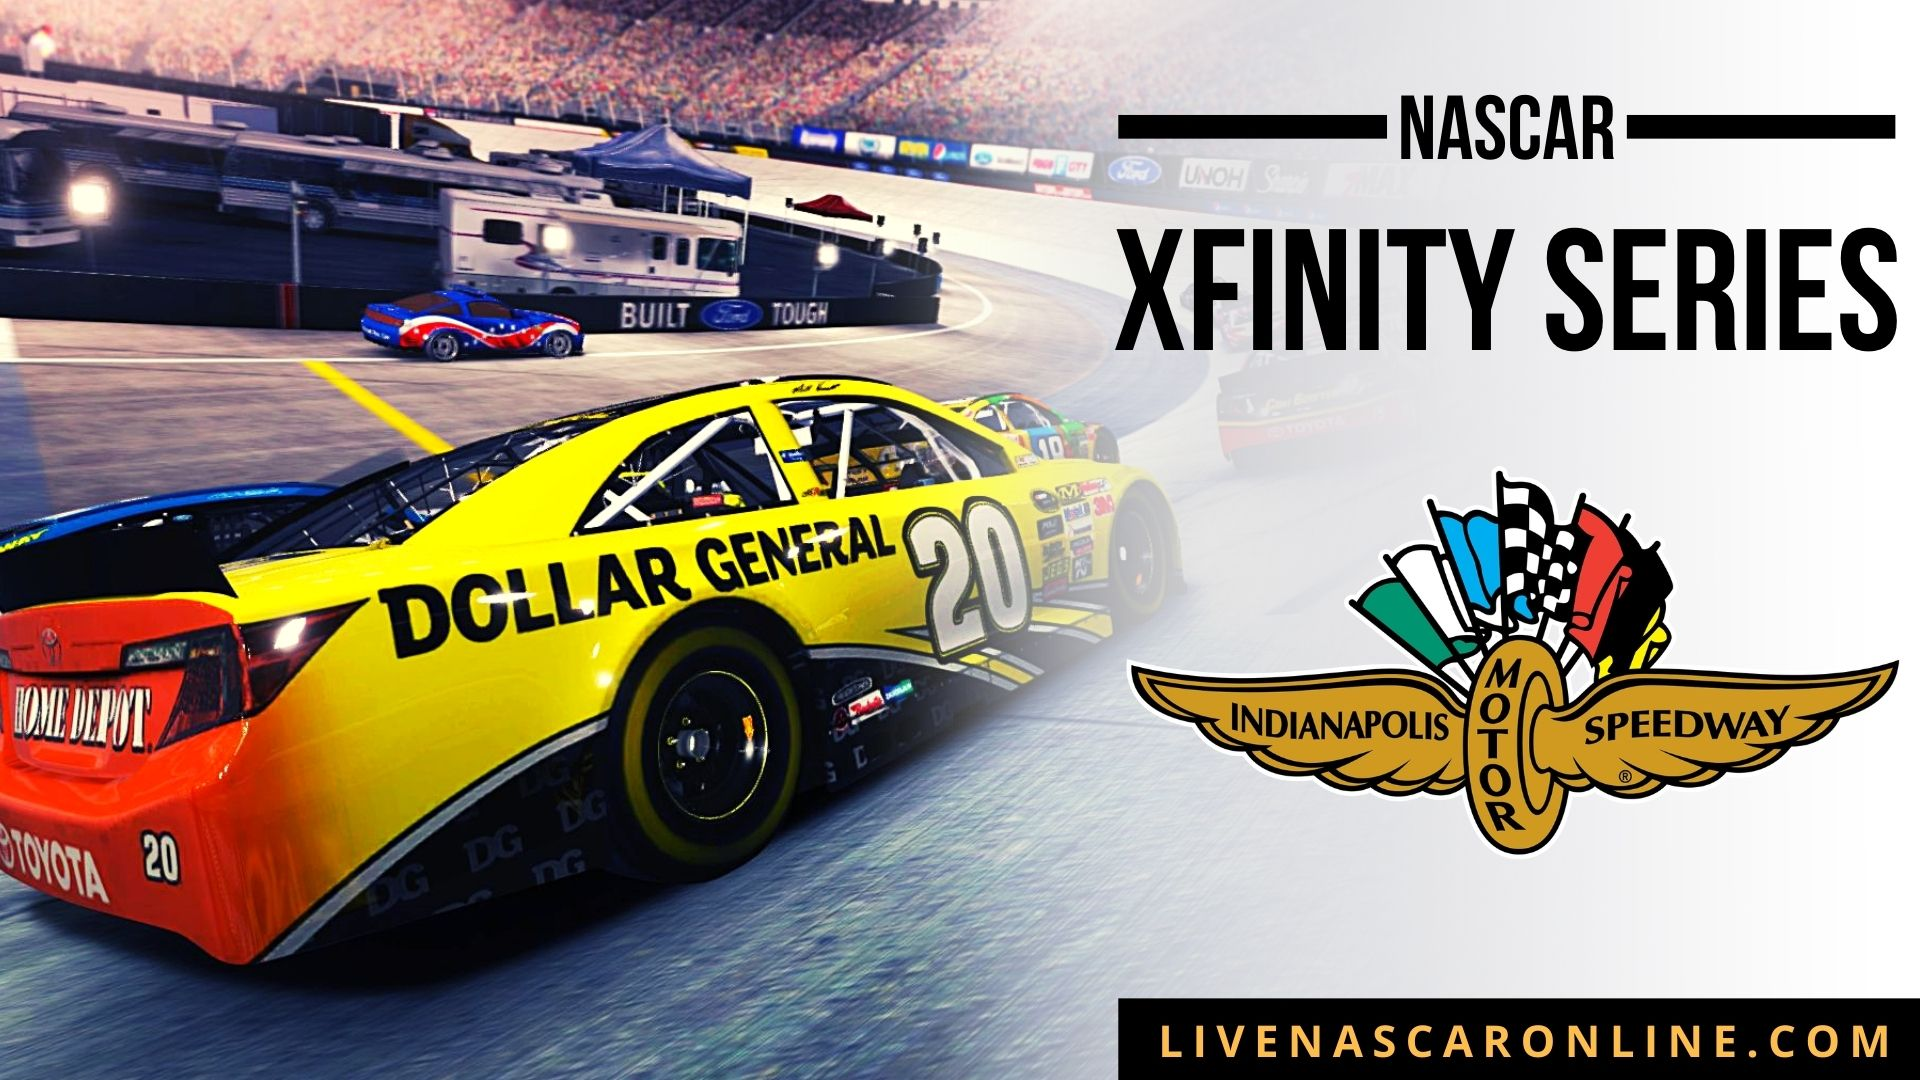 NASCAR Xfinity Race at Indianapolis RC Live Stream 2021